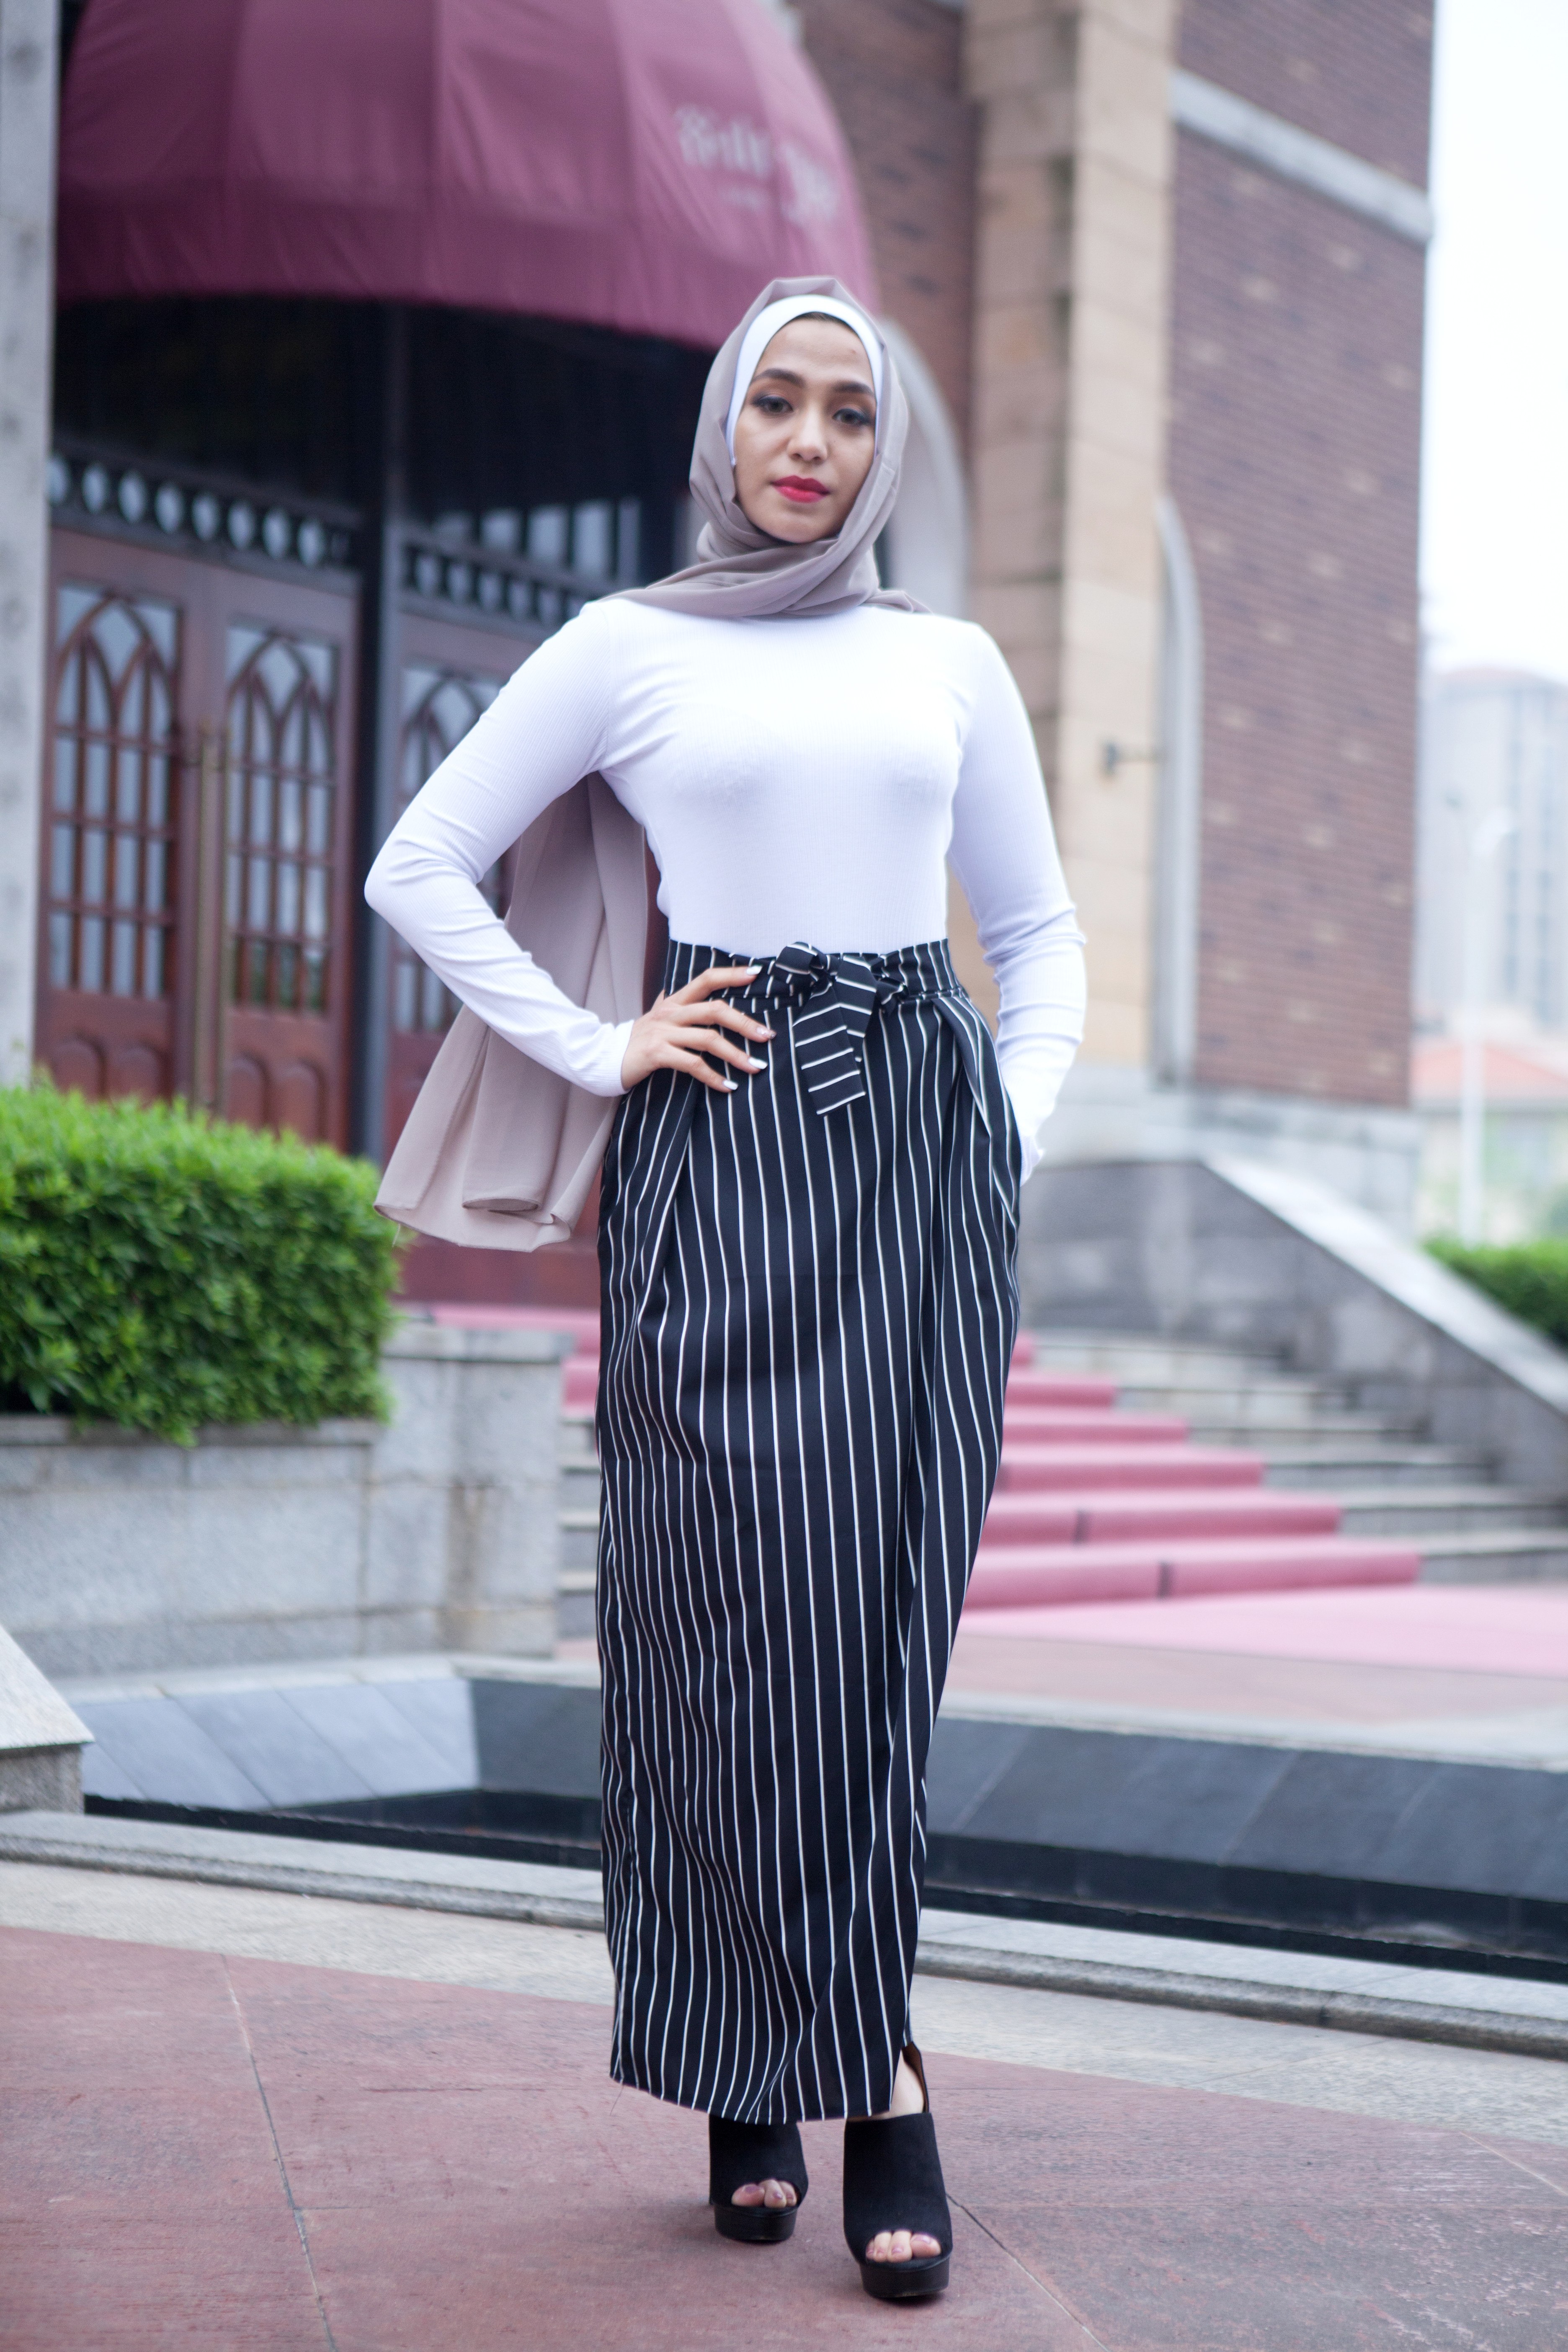 5c5983210b0e4a Details about Black White Vertical Stripes Muslim Long Maxi Skirt Islamic  Knot Dress Bandage